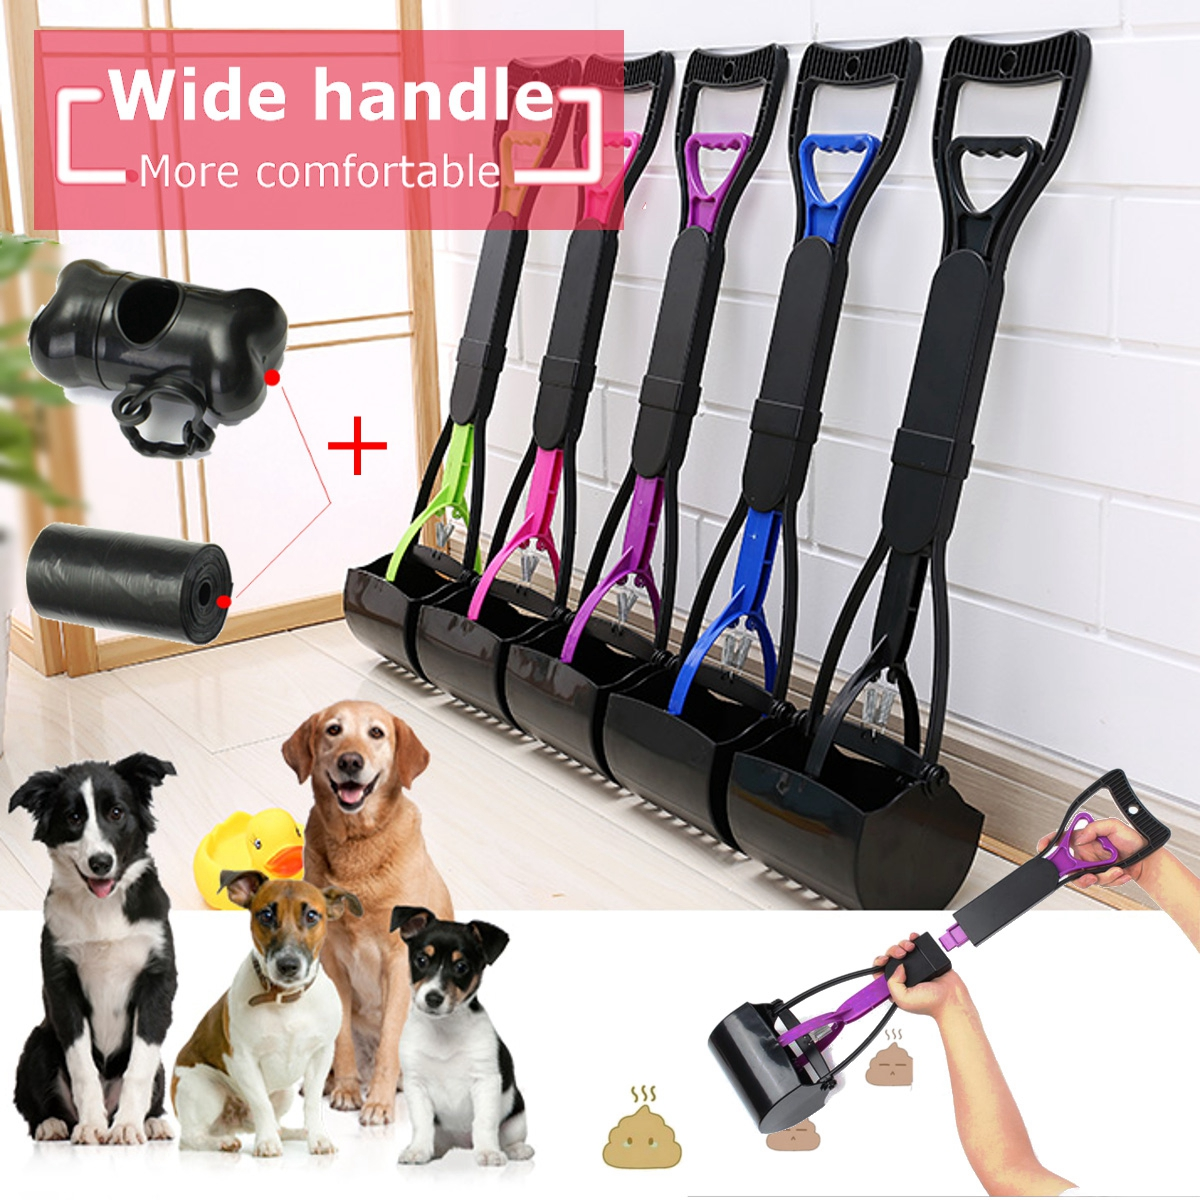 Pet Cat Dog Pooper Scooper Plastic Jaw Pets Poop Scoop Pick Up Easy Clean Waste Shovel Long Handle + Plastic Bag